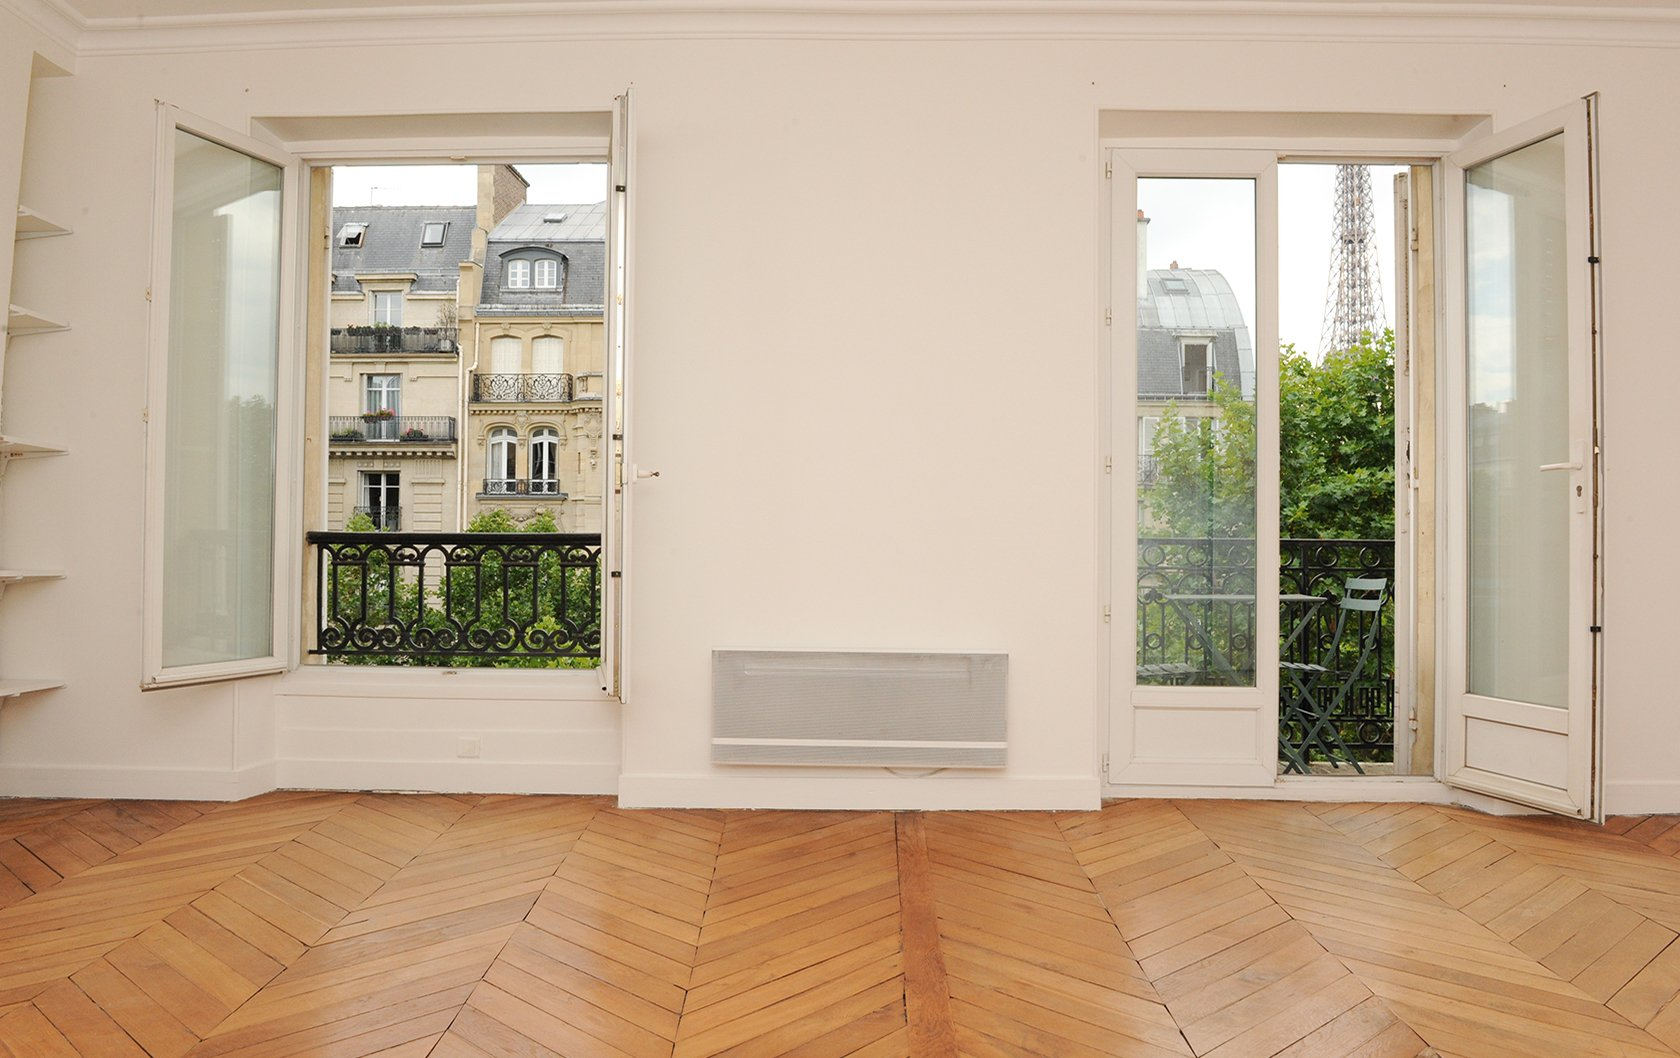 cairanne-living-room-before-eiffel-view